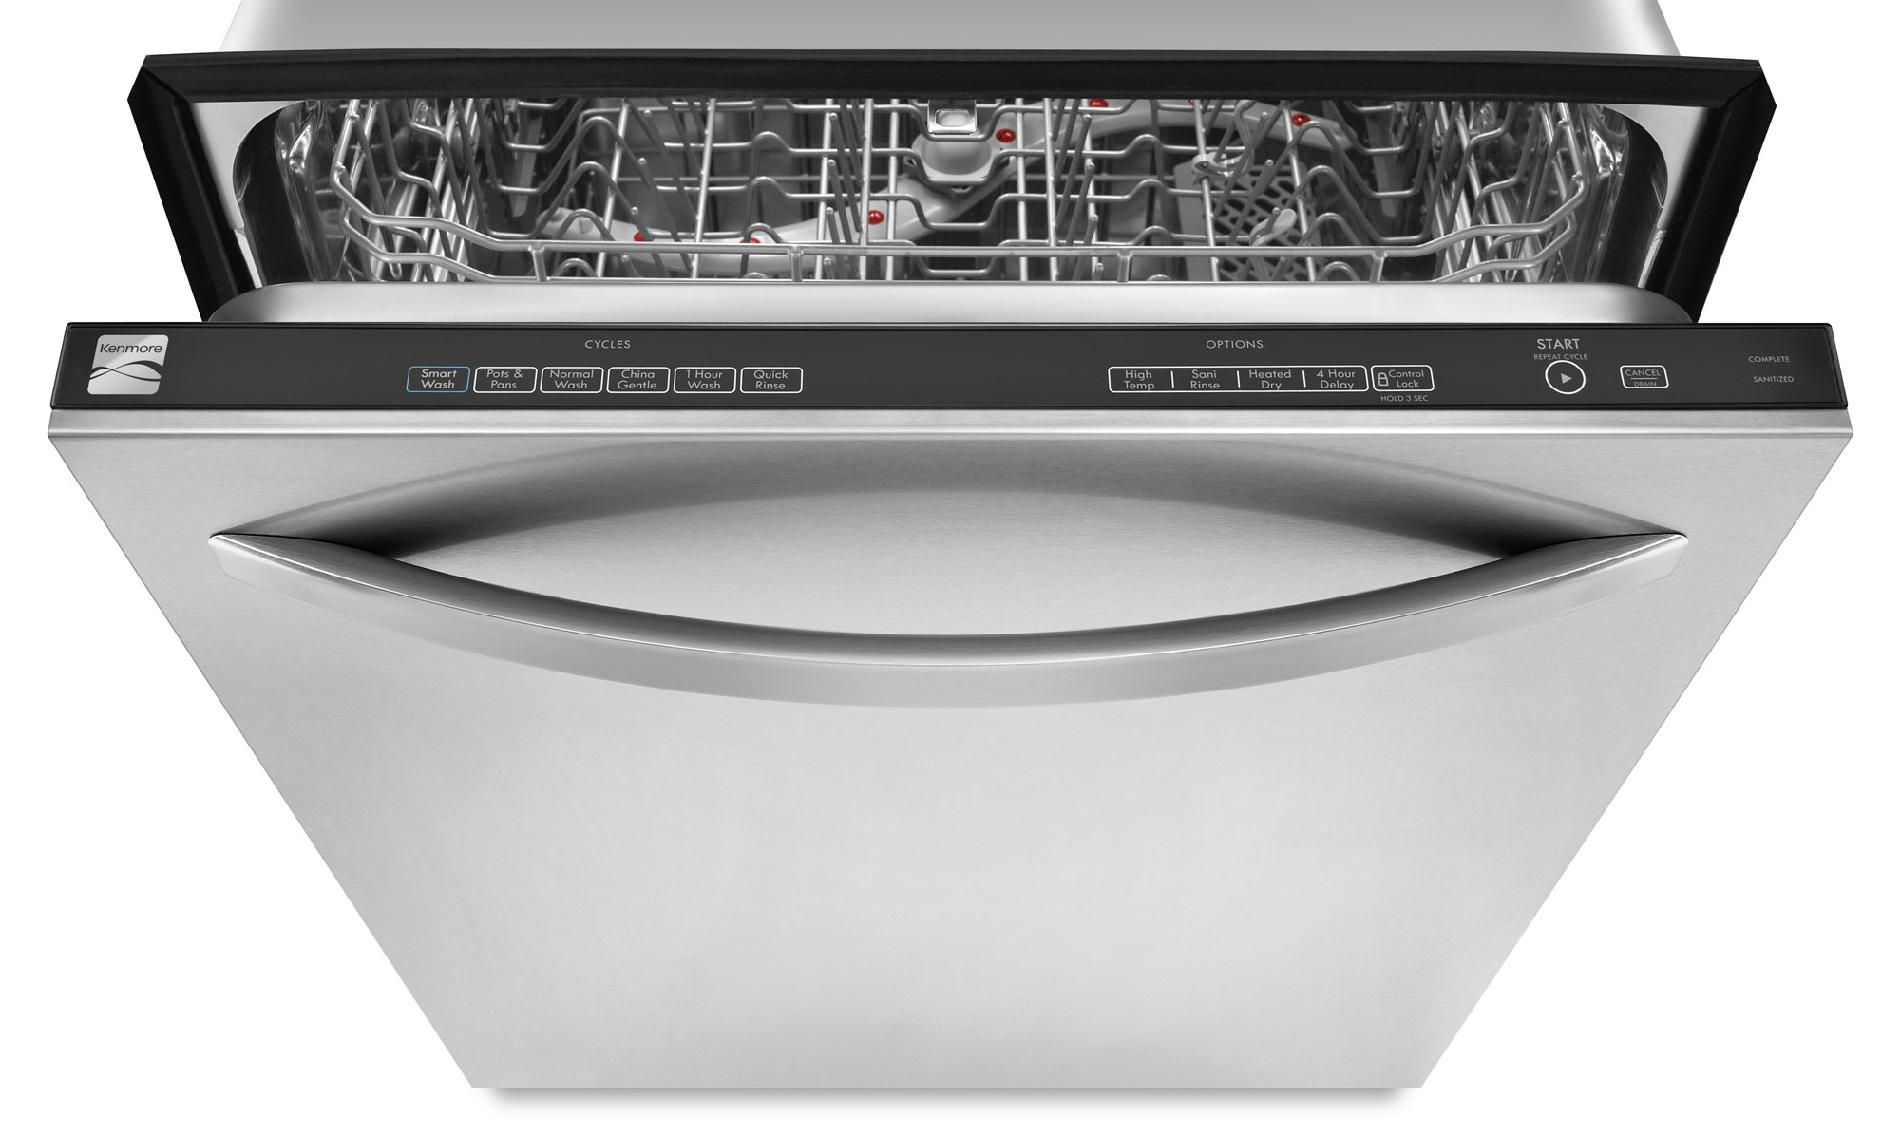 "Kenmore 24"" Built-In Dishwasher w/ Stainless-Steel Tub - Stainless Steel"